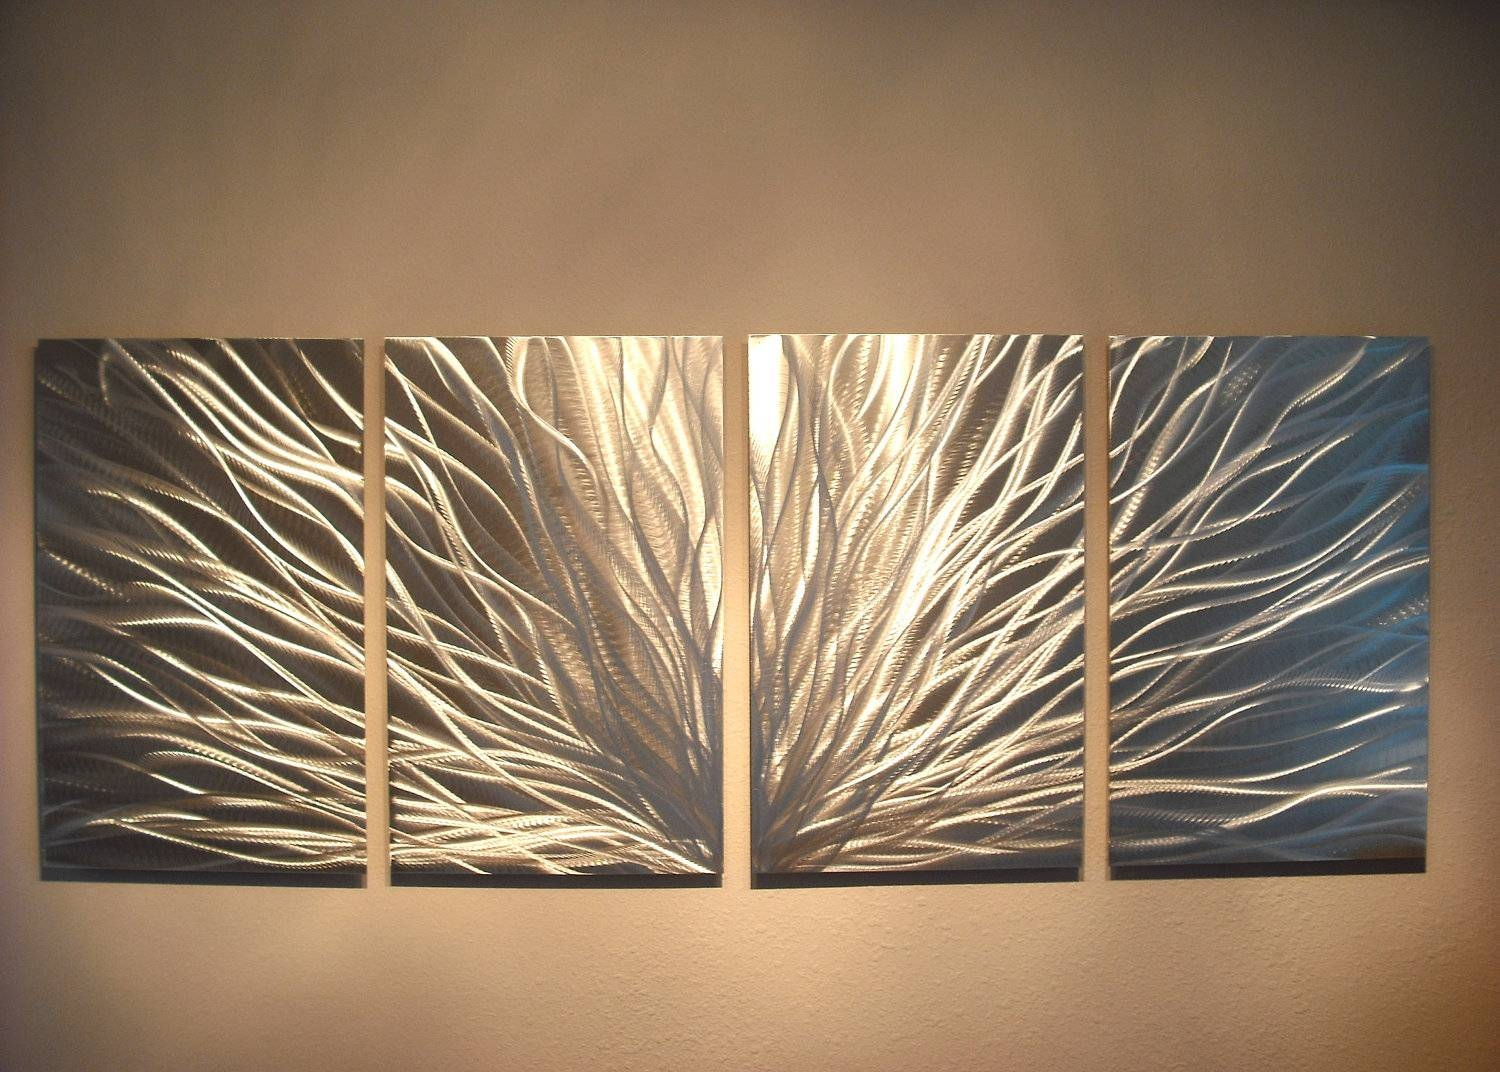 Radiance – Abstract Metal Wall Art Contemporary Modern Decor Within Most Recent Indoor Metal Wall Art (Gallery 17 of 20)